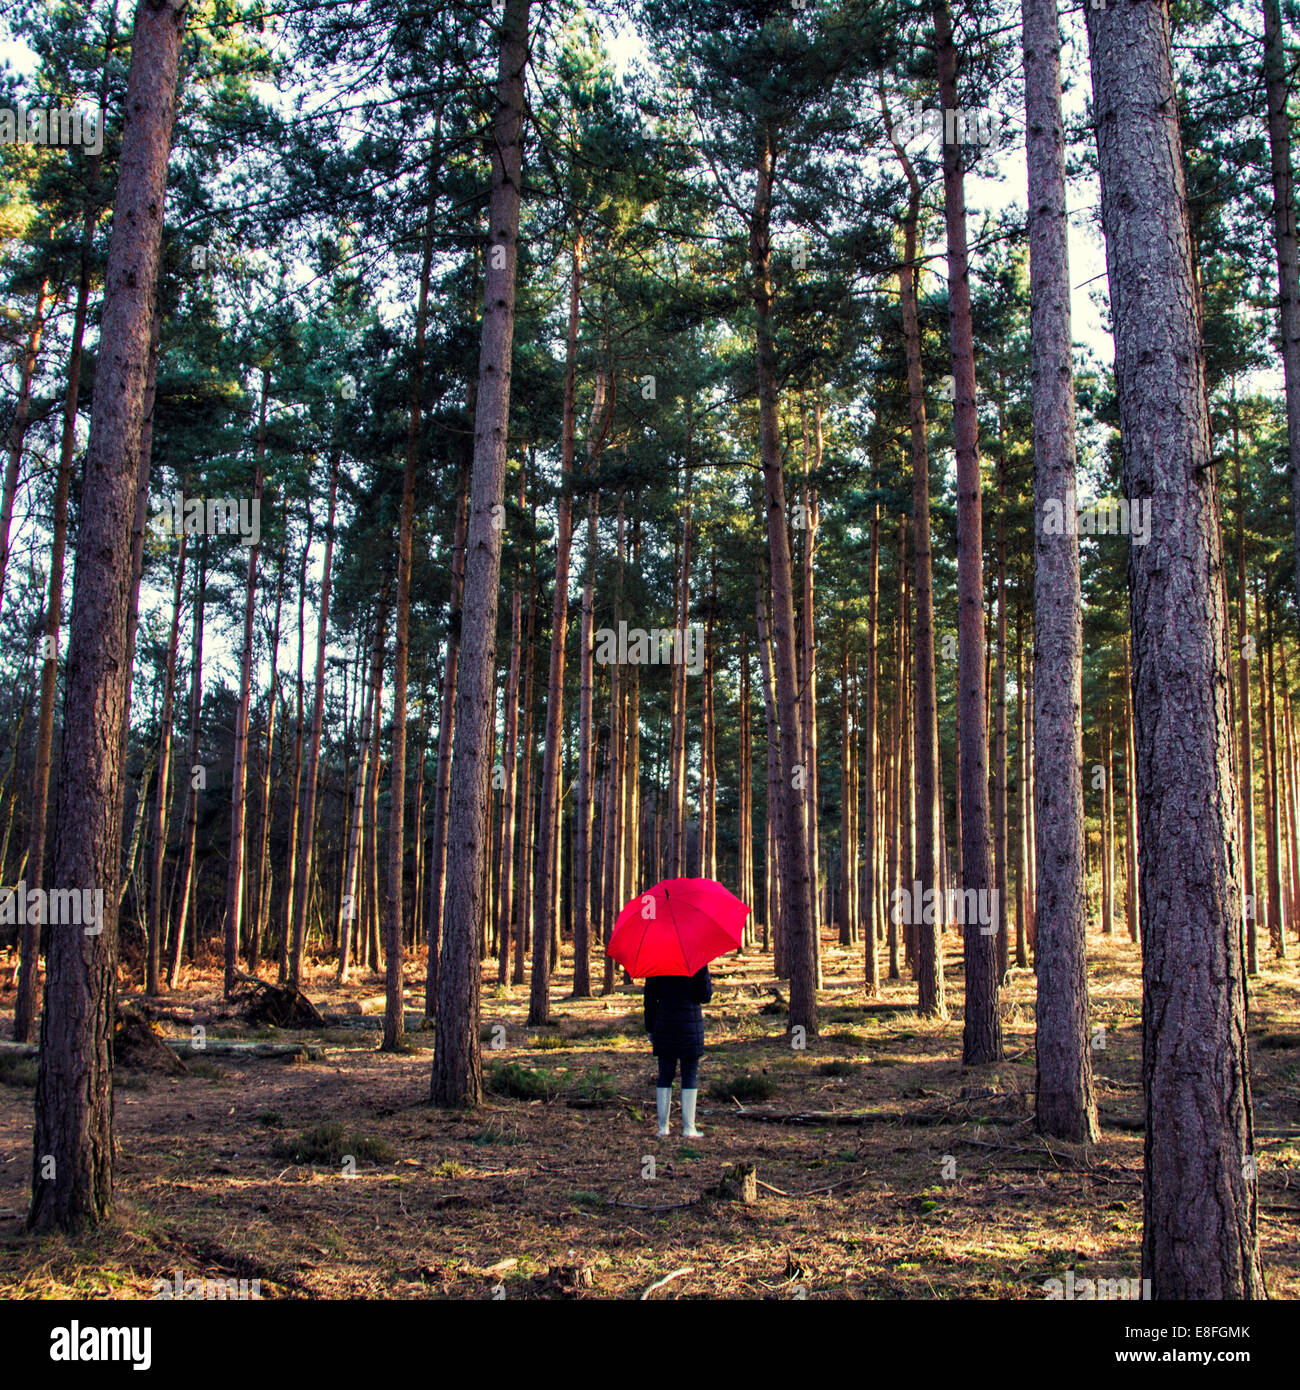 Woman standing in forest with umbrella - Stock Image